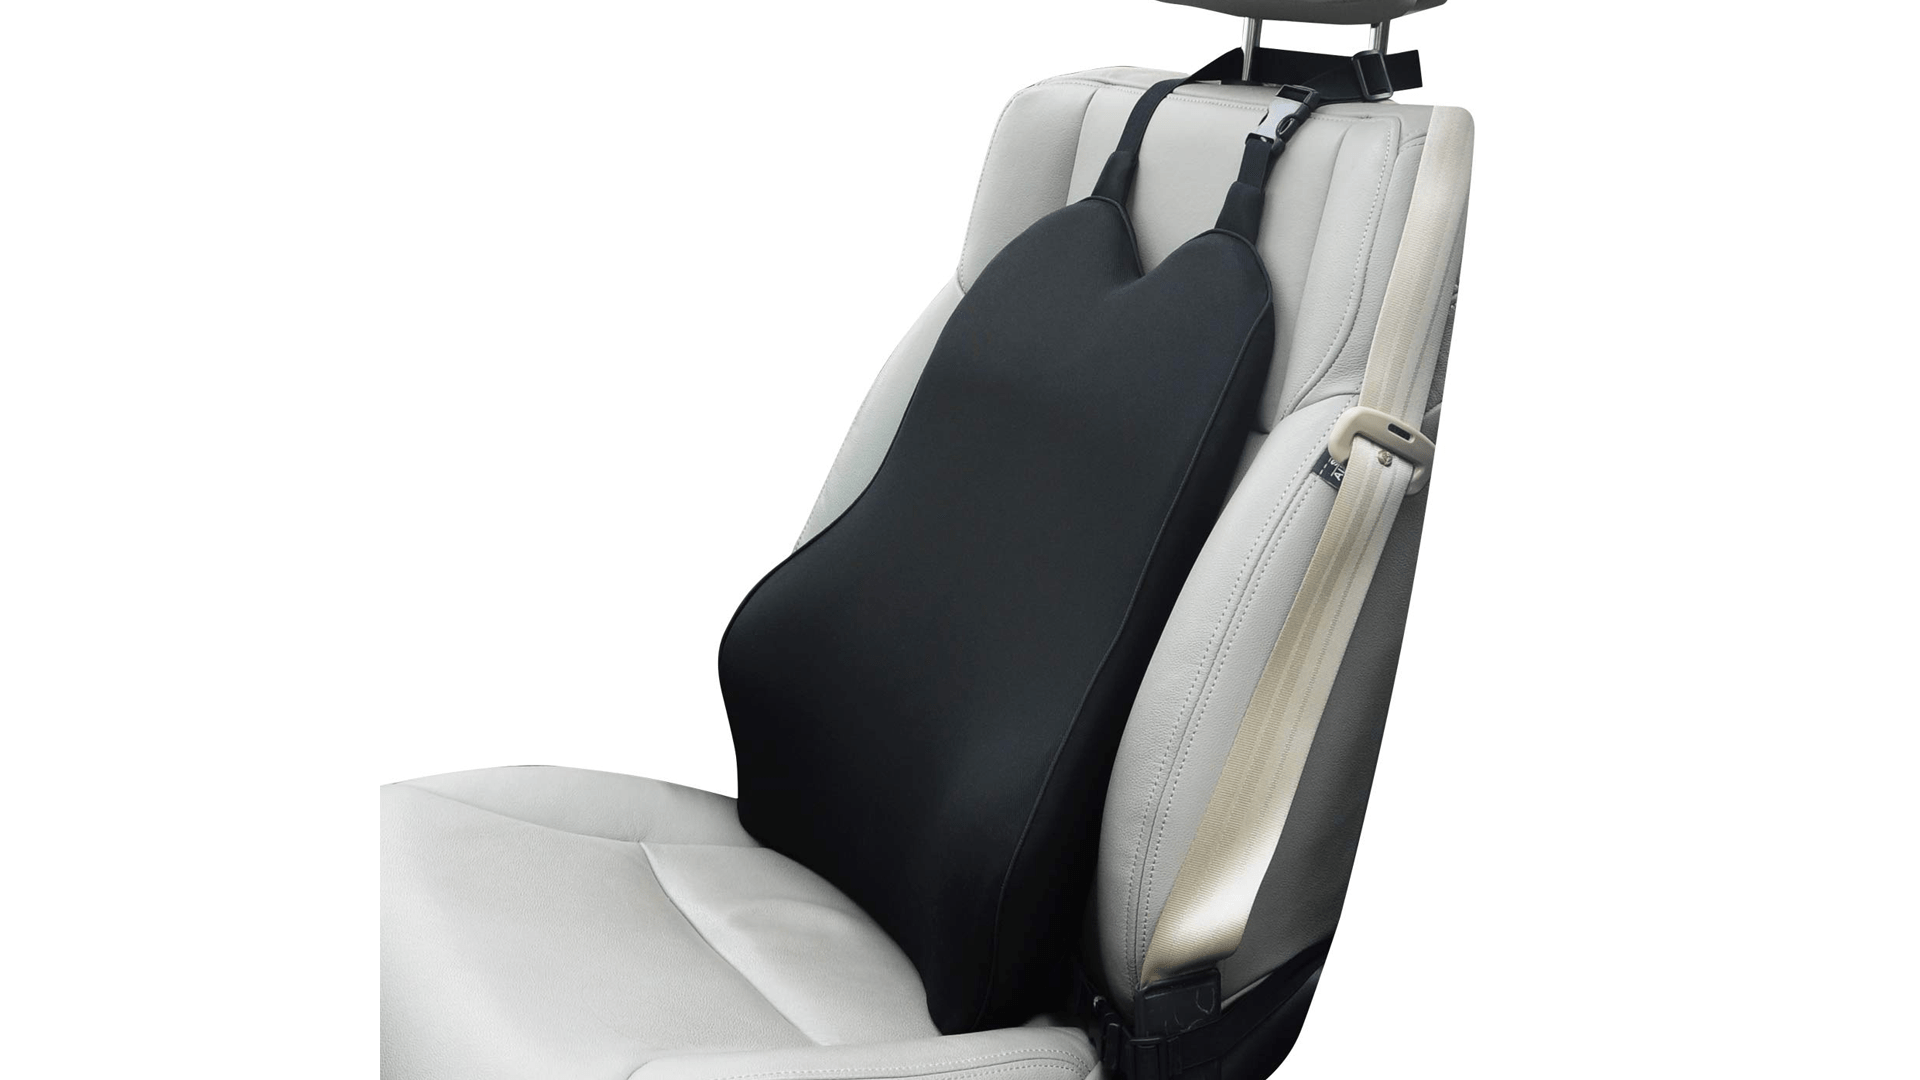 the best back and lumbar pillows for